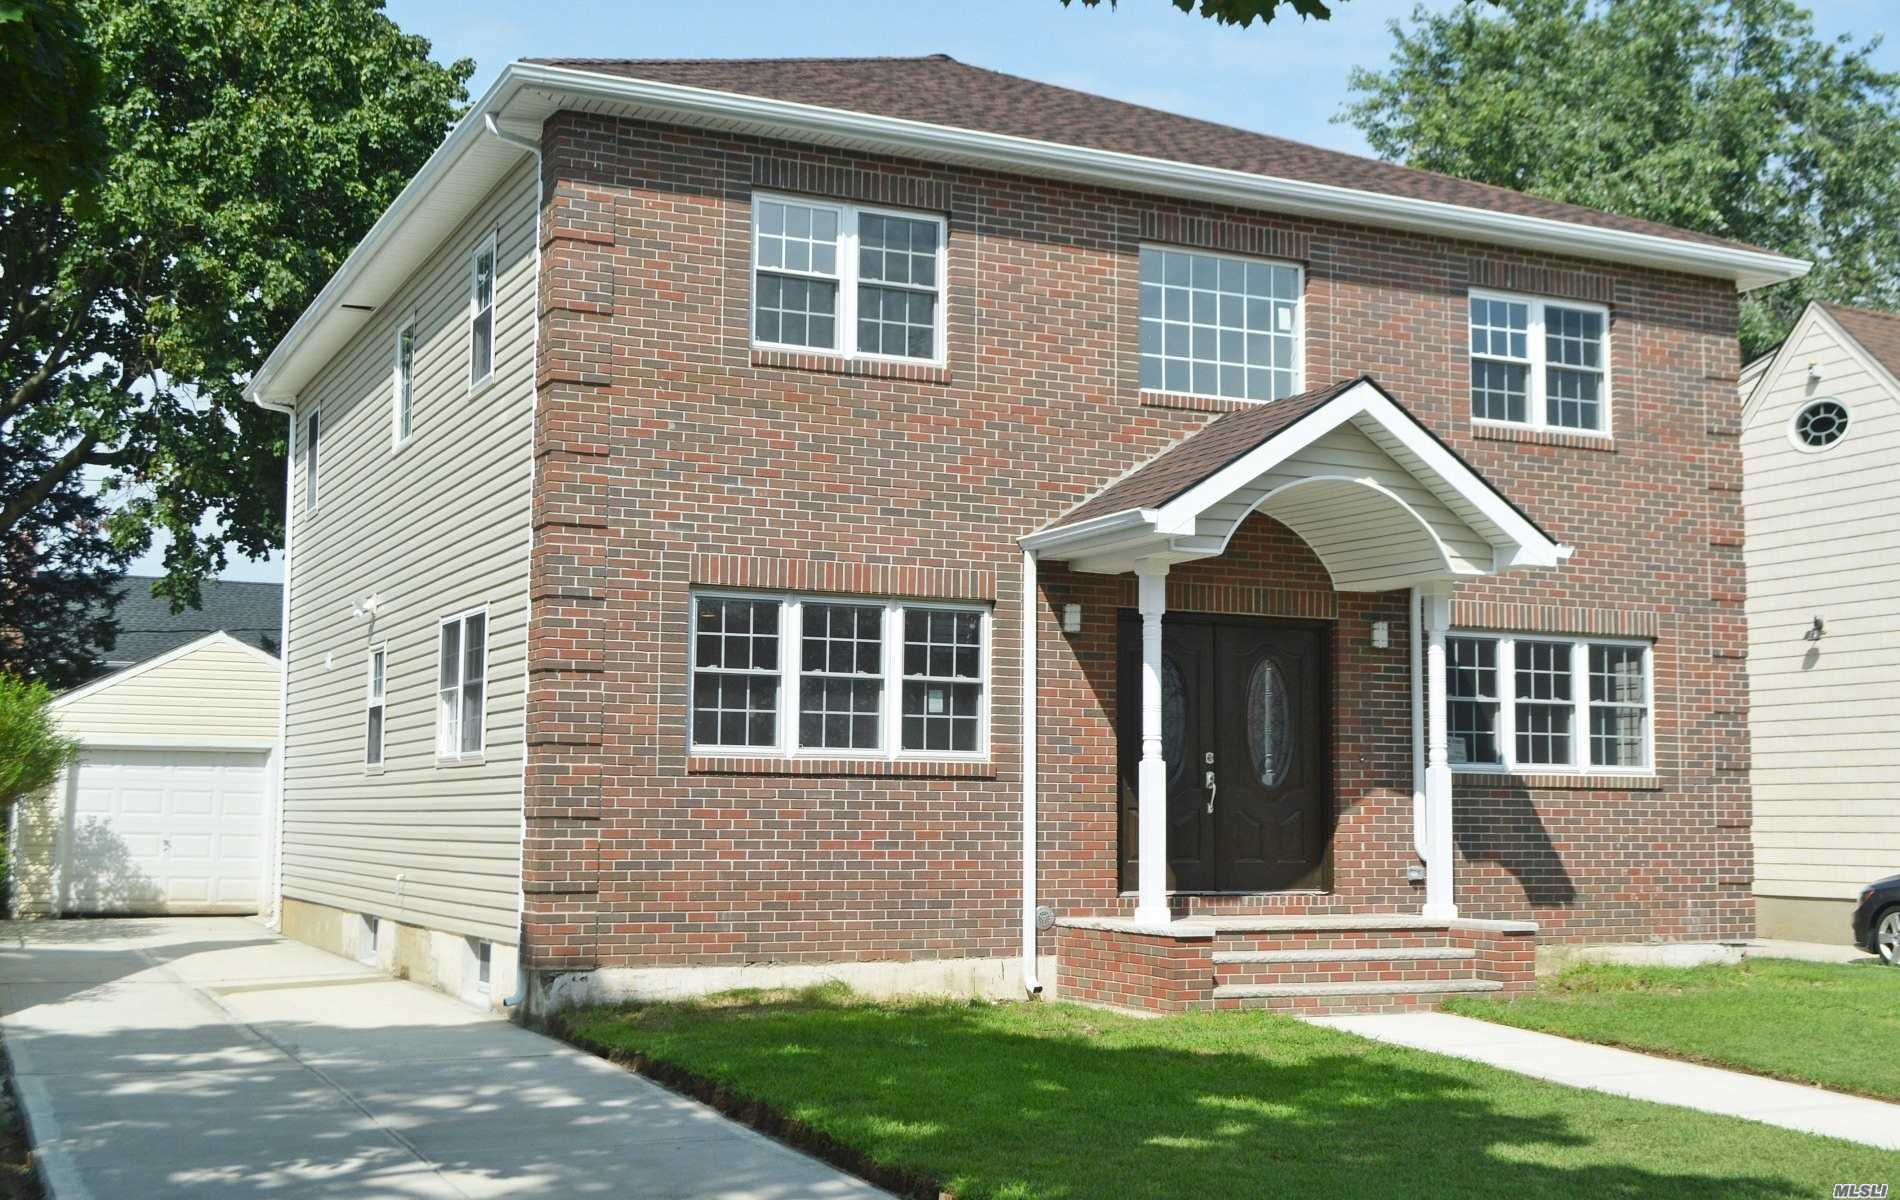 Just Rebuilt In 2018, All New Condition!Beautiful Center Hall Colonial In Desirable Quiet St, Herricks Schools, 2400 Sq Ft, Offering 4Beds 3.5Bath, Master Suites On 1st Fl & Bigger Master Suites On 2nd Fl, Extra Sitting Area On 2nd Fl, Huge Open Flow Layout Eik W/Formal Dining, All High-Line Appliances, Oak Hardwood Fls, 6 Heating Zone, 8 Ductless Split A/C& Hi Hats Every Rms, Close To Schools & All Major High Ways!